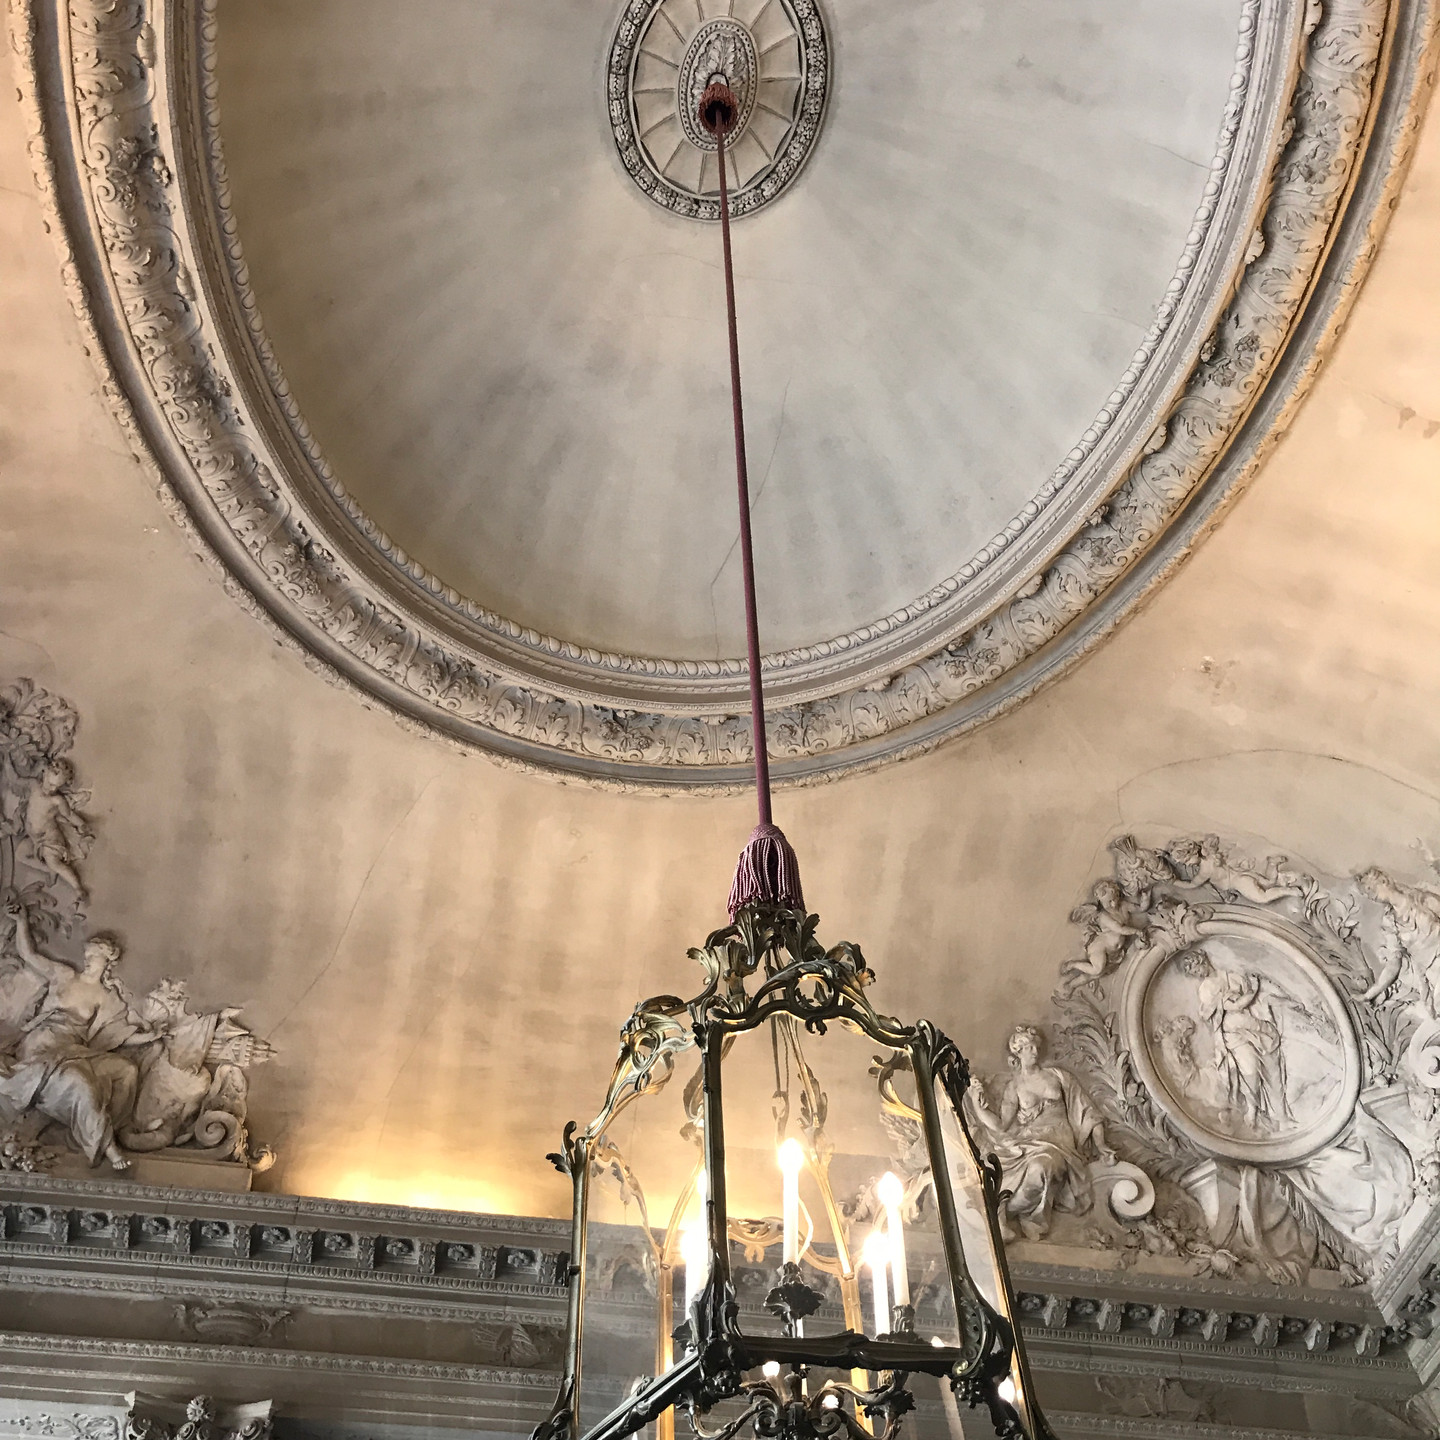 Carved Ceiling Detail and Chandelier at Versailles